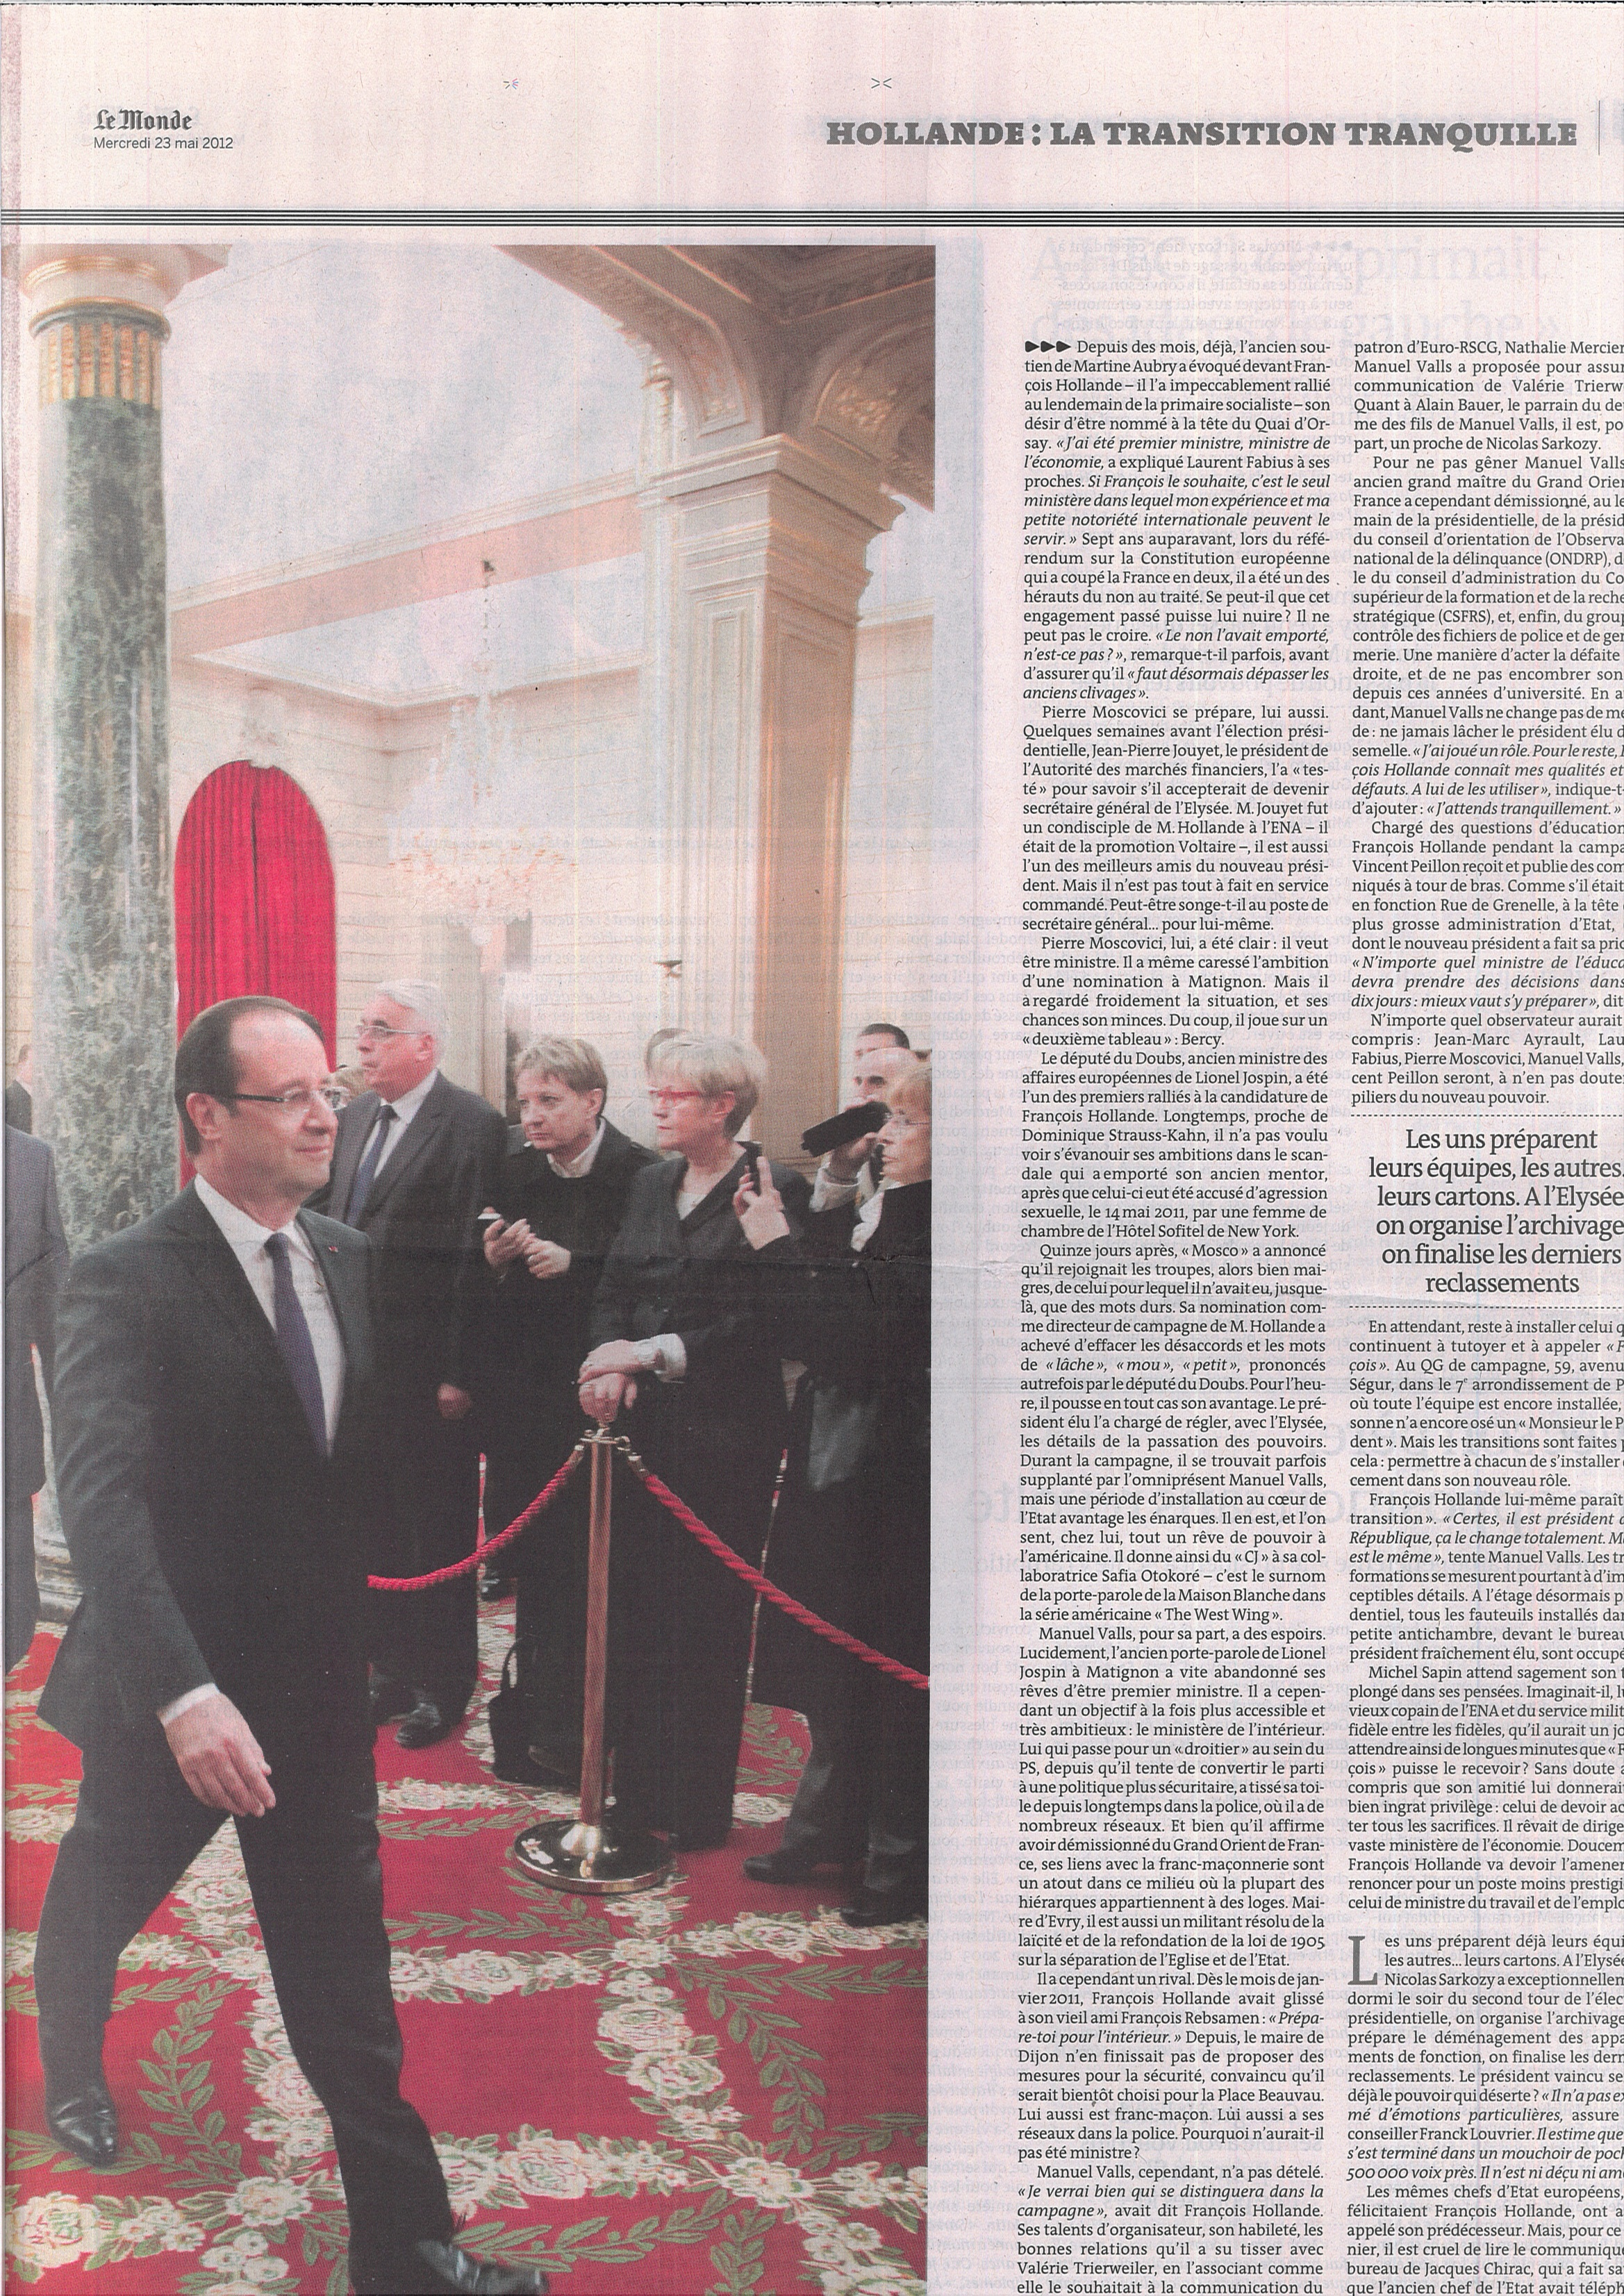 120523_LeMonde_hollande